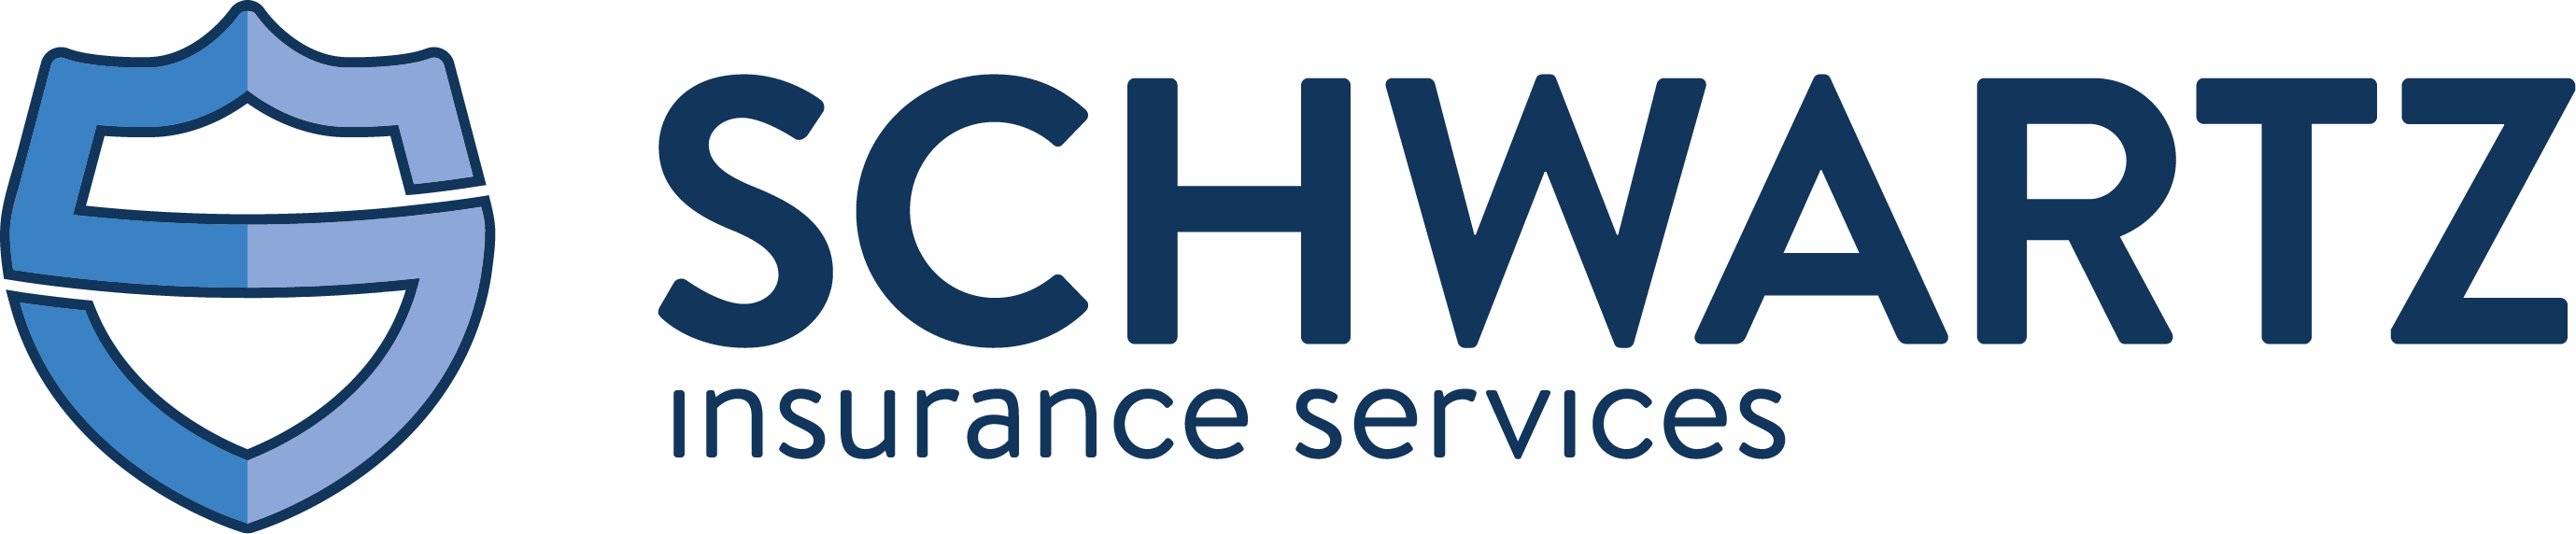 Schwartz Insurance Services